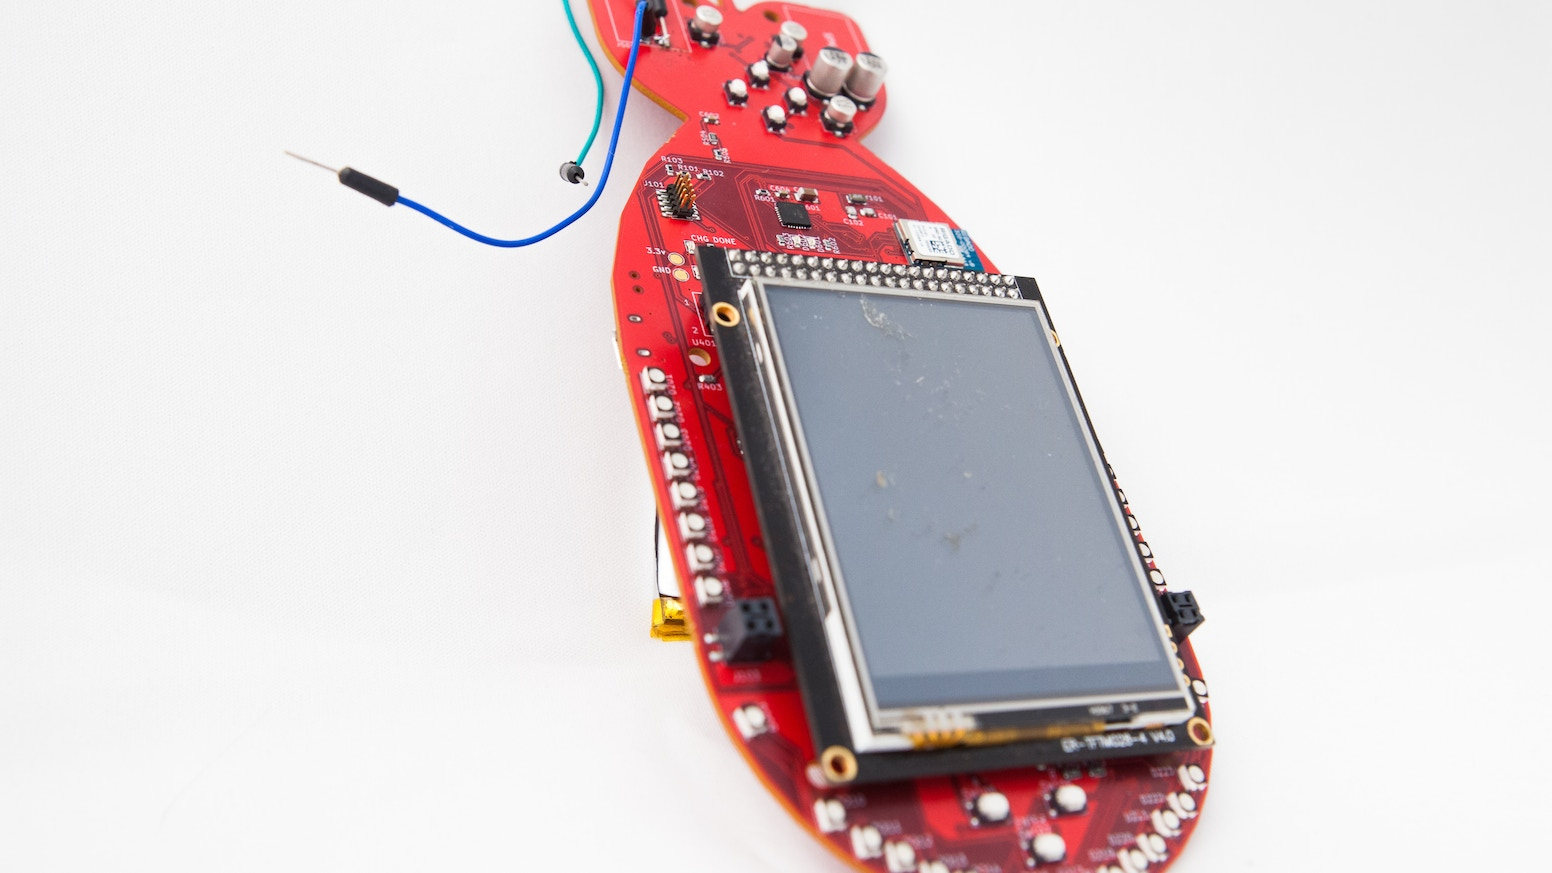 A hackable electronic badge loaded with RGB LEDs, stereo audio, LiPo battery, multiplayer radio-based sea battle game, and more!